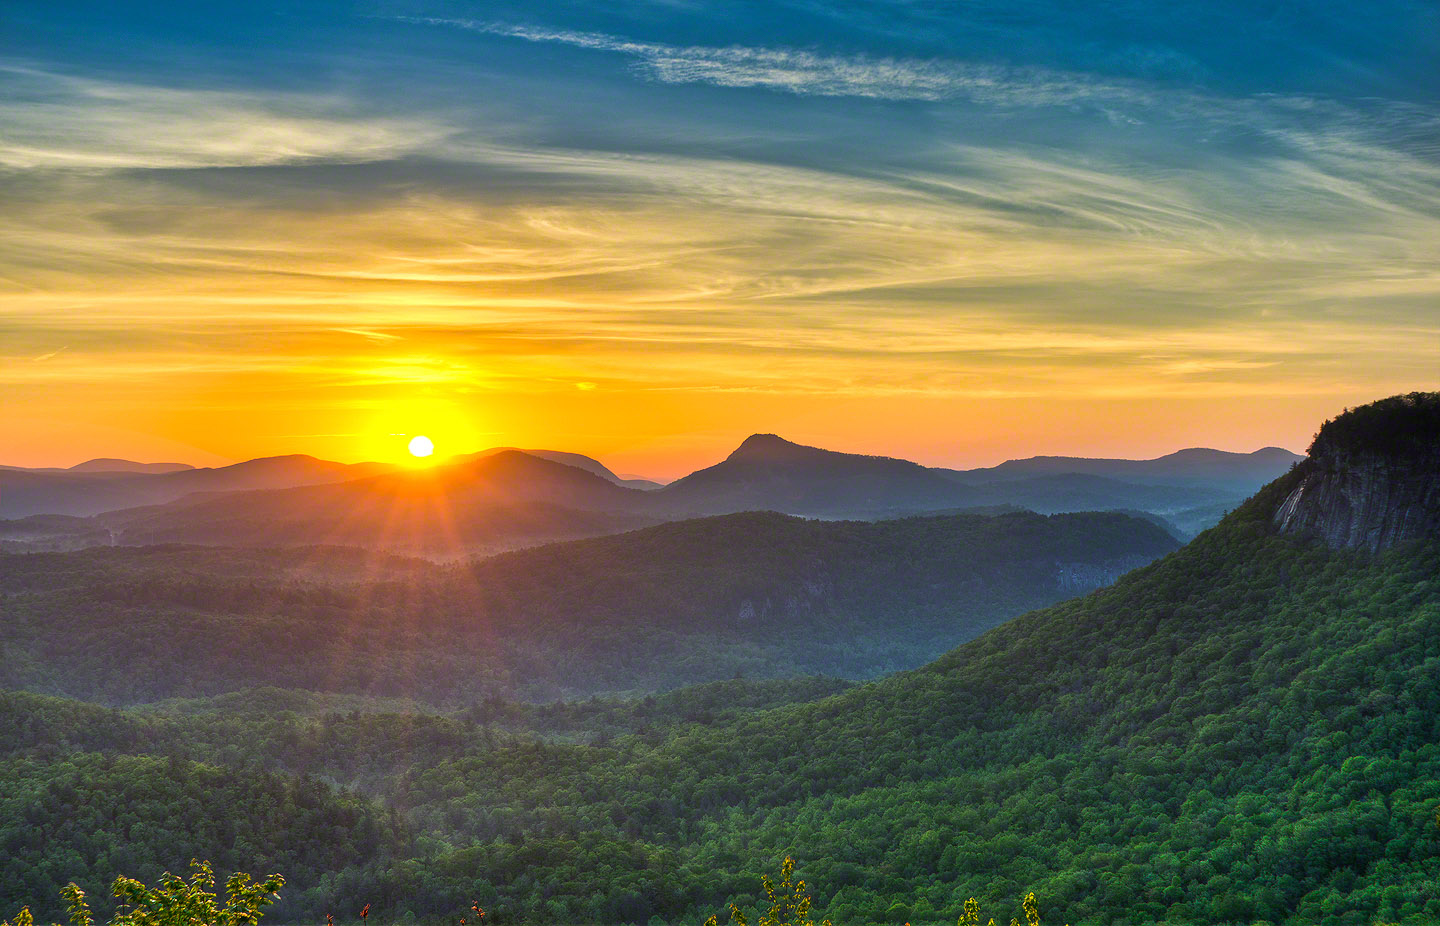 Whiteside Mountain Sunrise Desktop Wallpapers images download